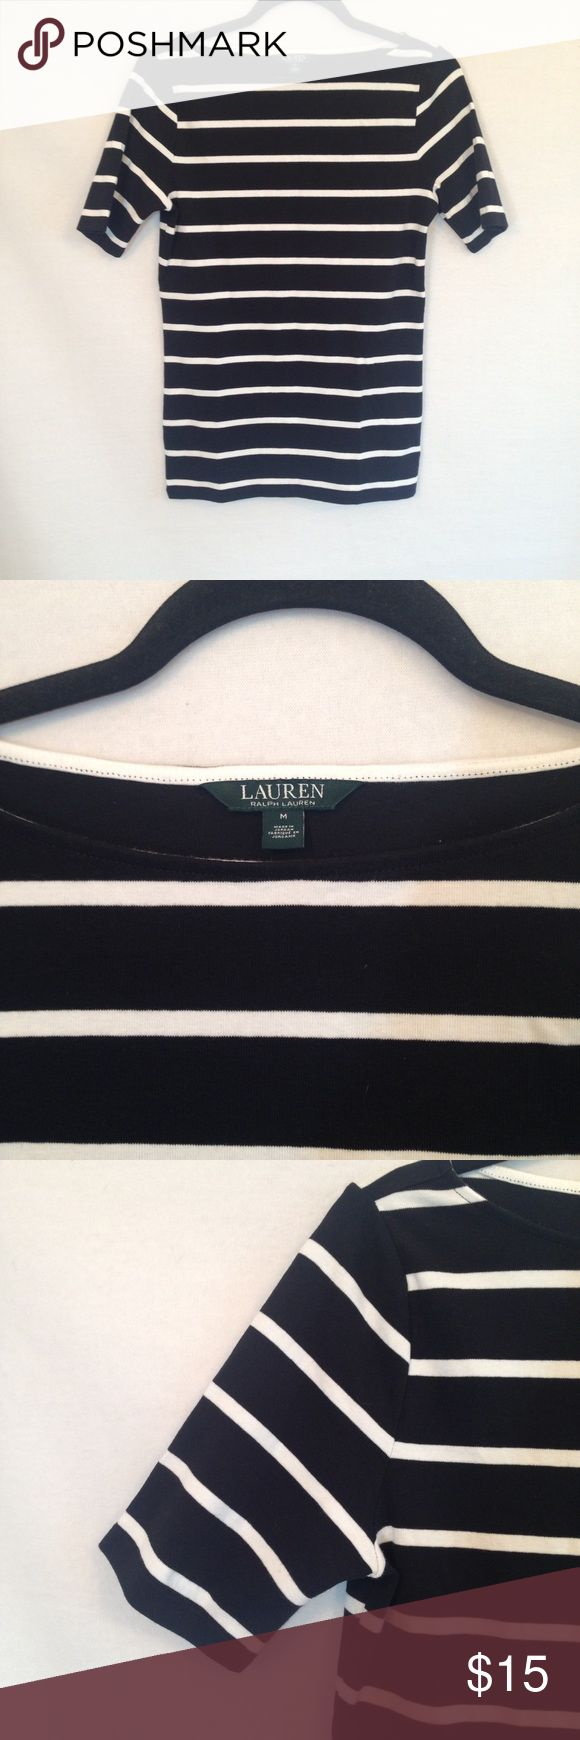 """Ralph Lauren black and white striped top size med Great staple striped top by Ralph Lauren. Black and white stripes. Short sleeves. Slightly wide neckline. Fabric/Care tag on side has been cut out so material is unknown. Good condition.     armpit to armpit: approx 18"""" length: approx 25.5"""" Lauren Ralph Lauren Tops Tees - Short Sleeve"""